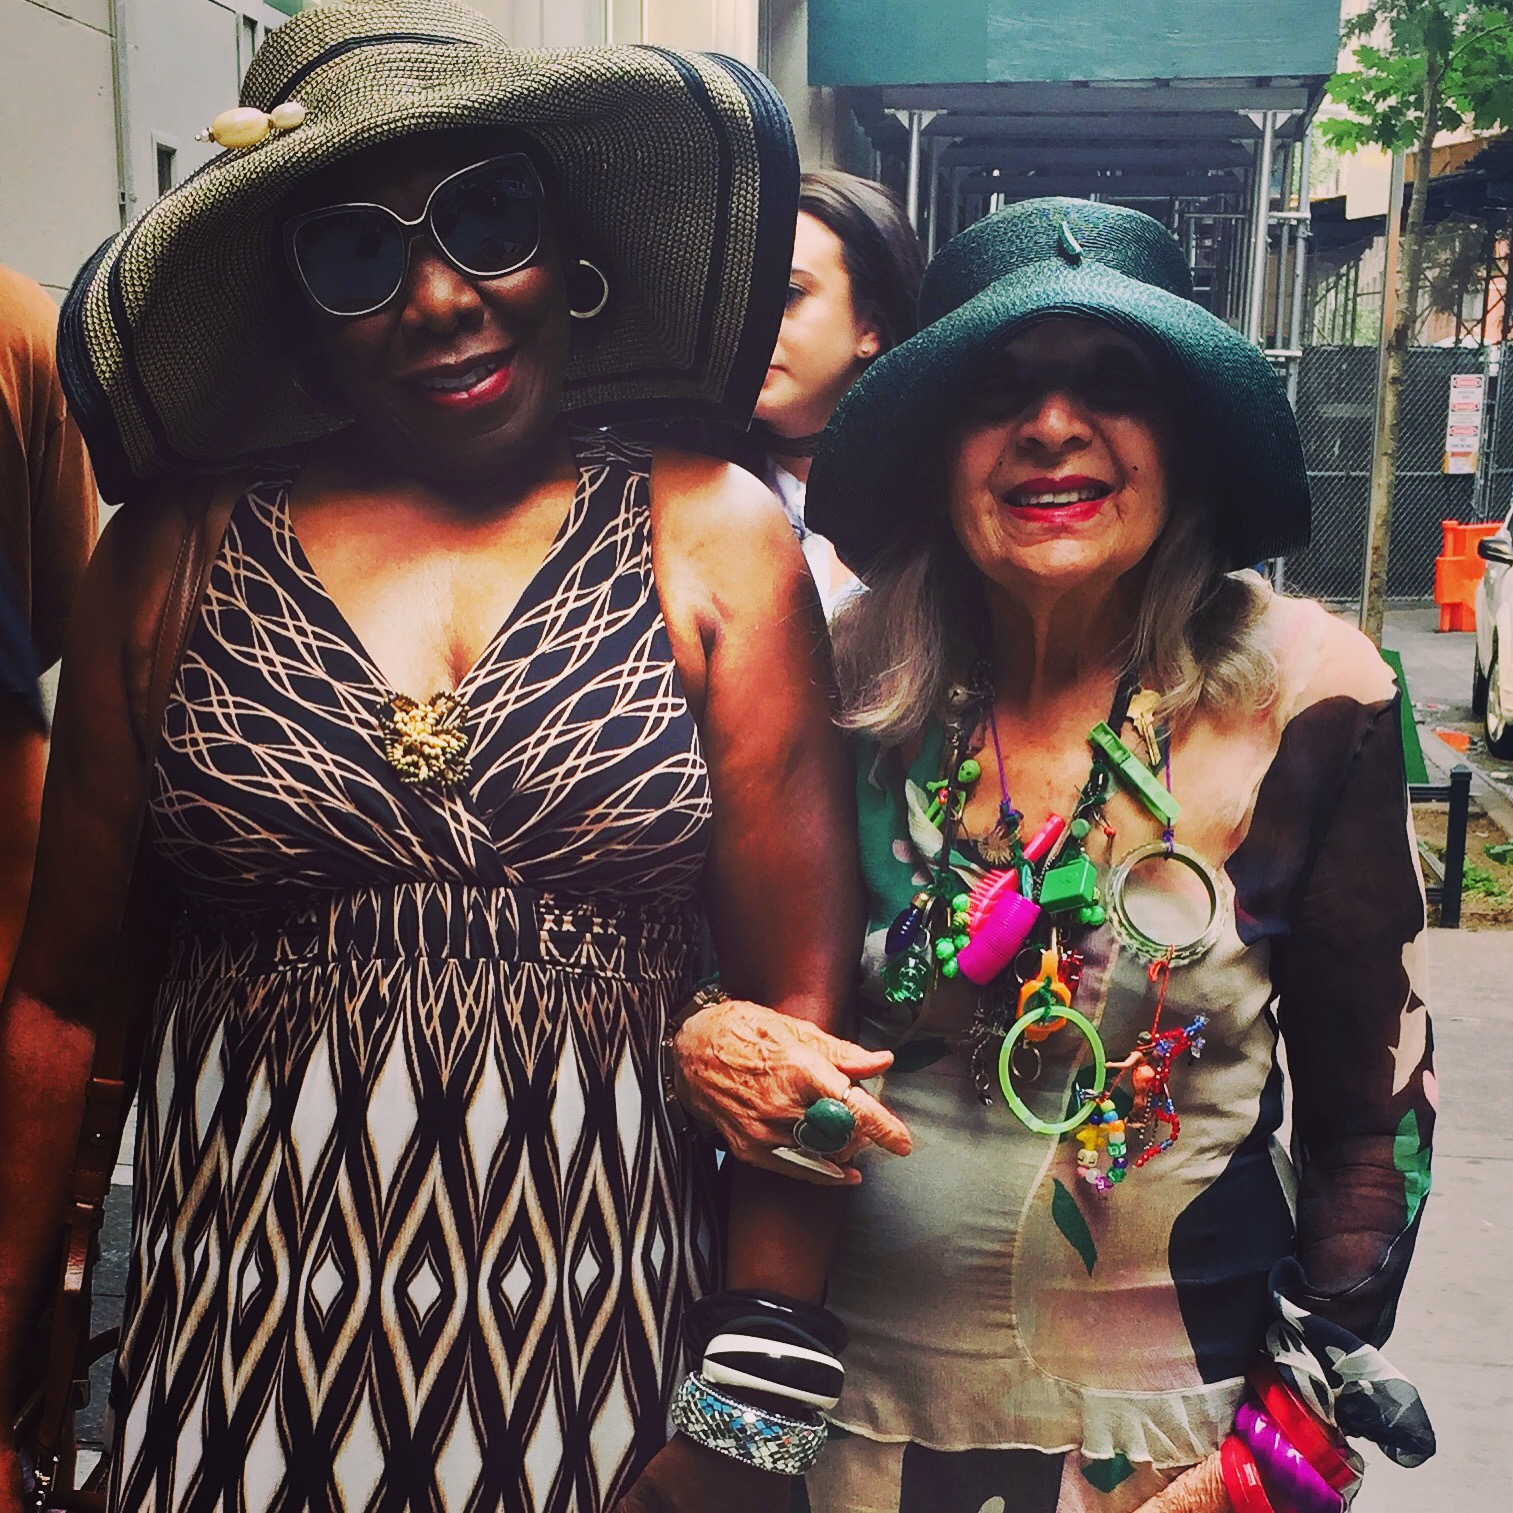 Mother, Ruth Birchett with artist, Malcah Zeldis at the documentary screening  Fabulous Fashionistas,  hosted by Sue Kreitzman at Senior Planet in NYC.